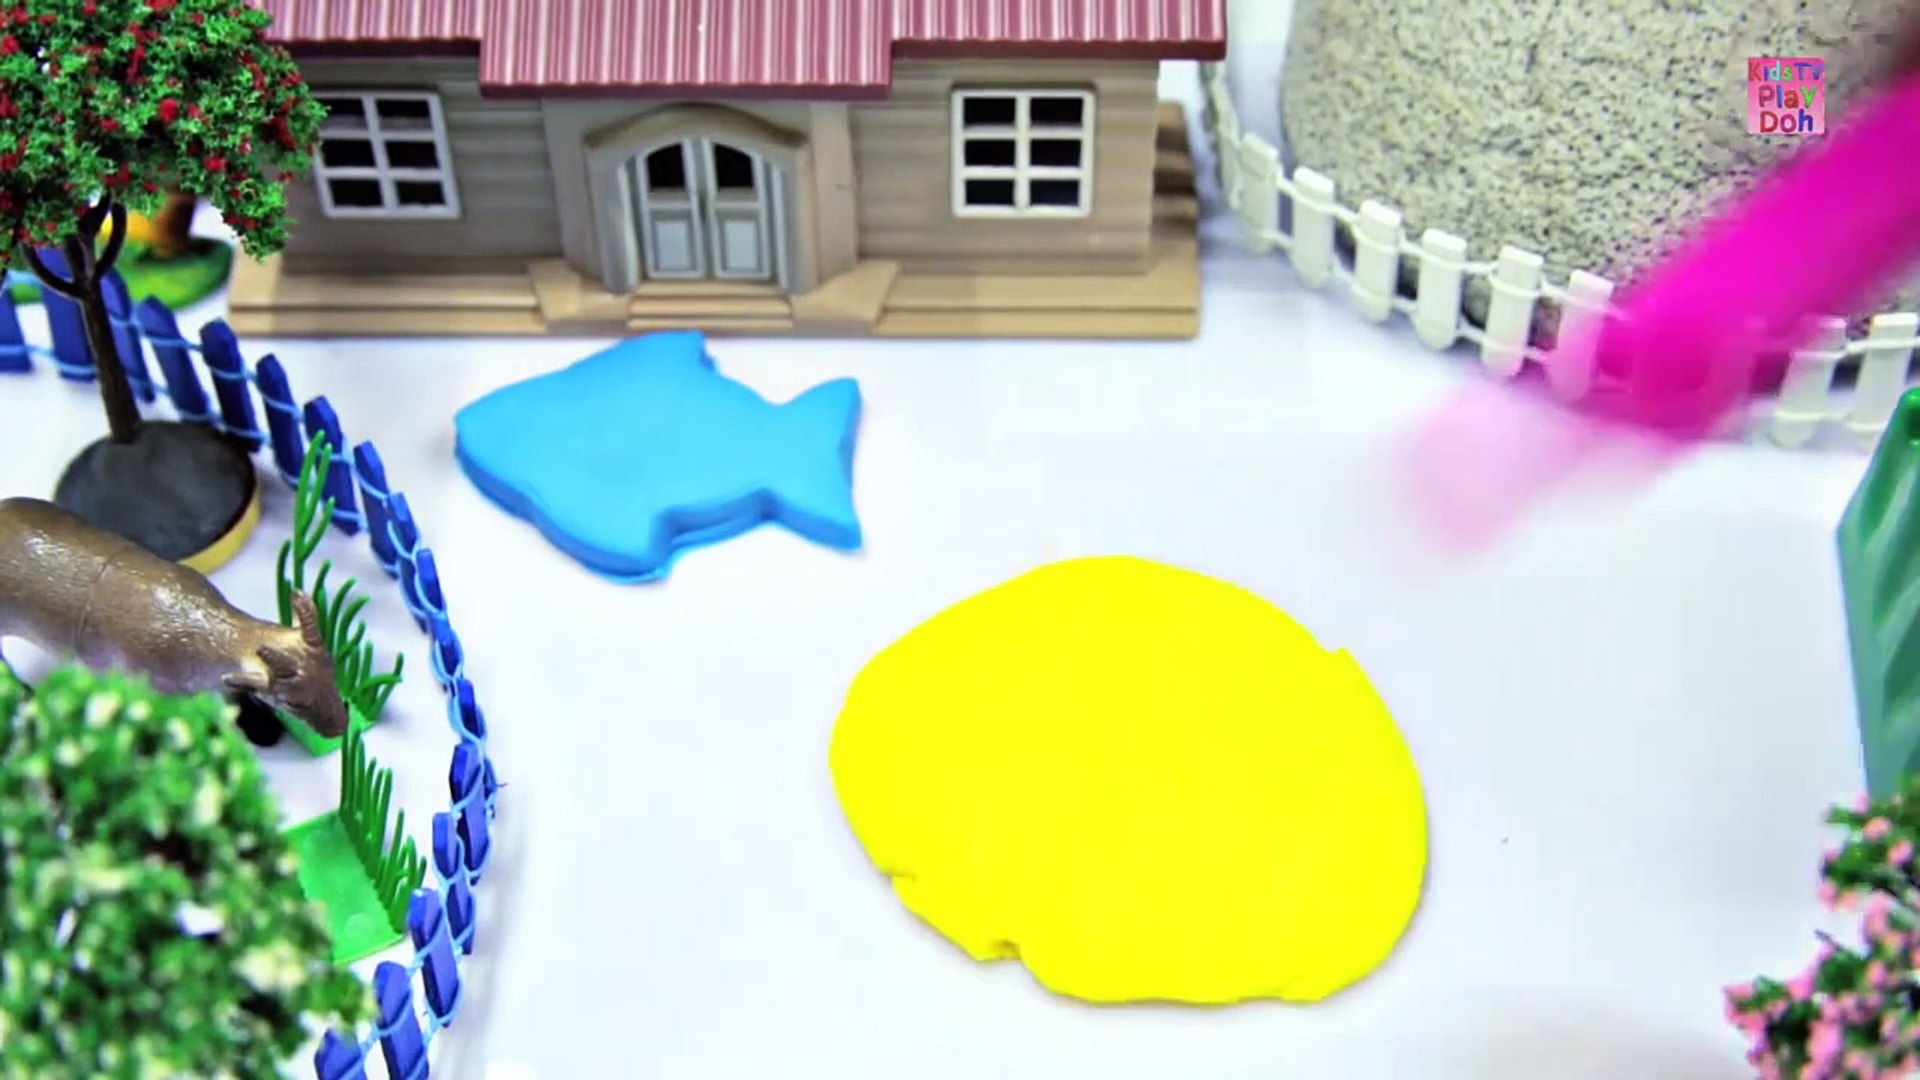 Learn Colors With Play Doh _ Play Doh Videoasds for Kids _ Kids Learning Videos  _ Play Doh Fish